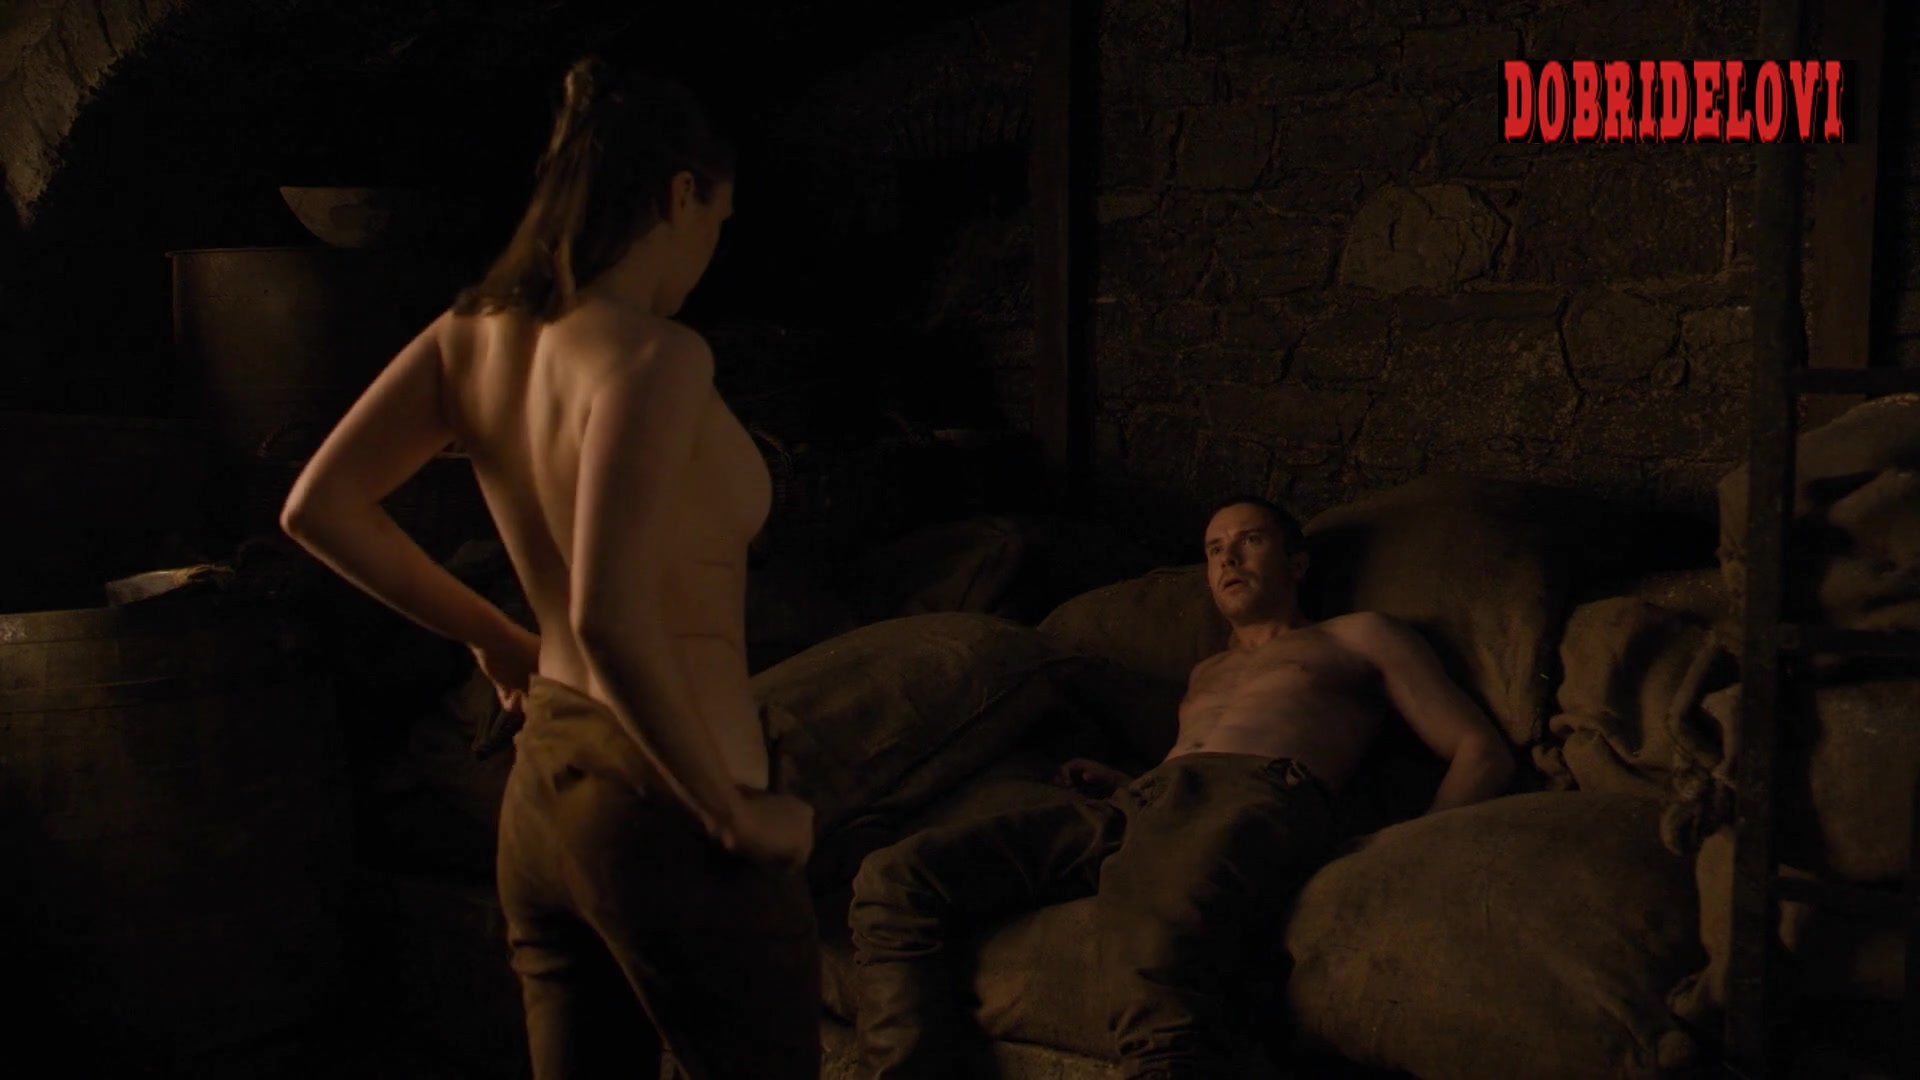 Maisie Williams nude debut in Game of Thrones